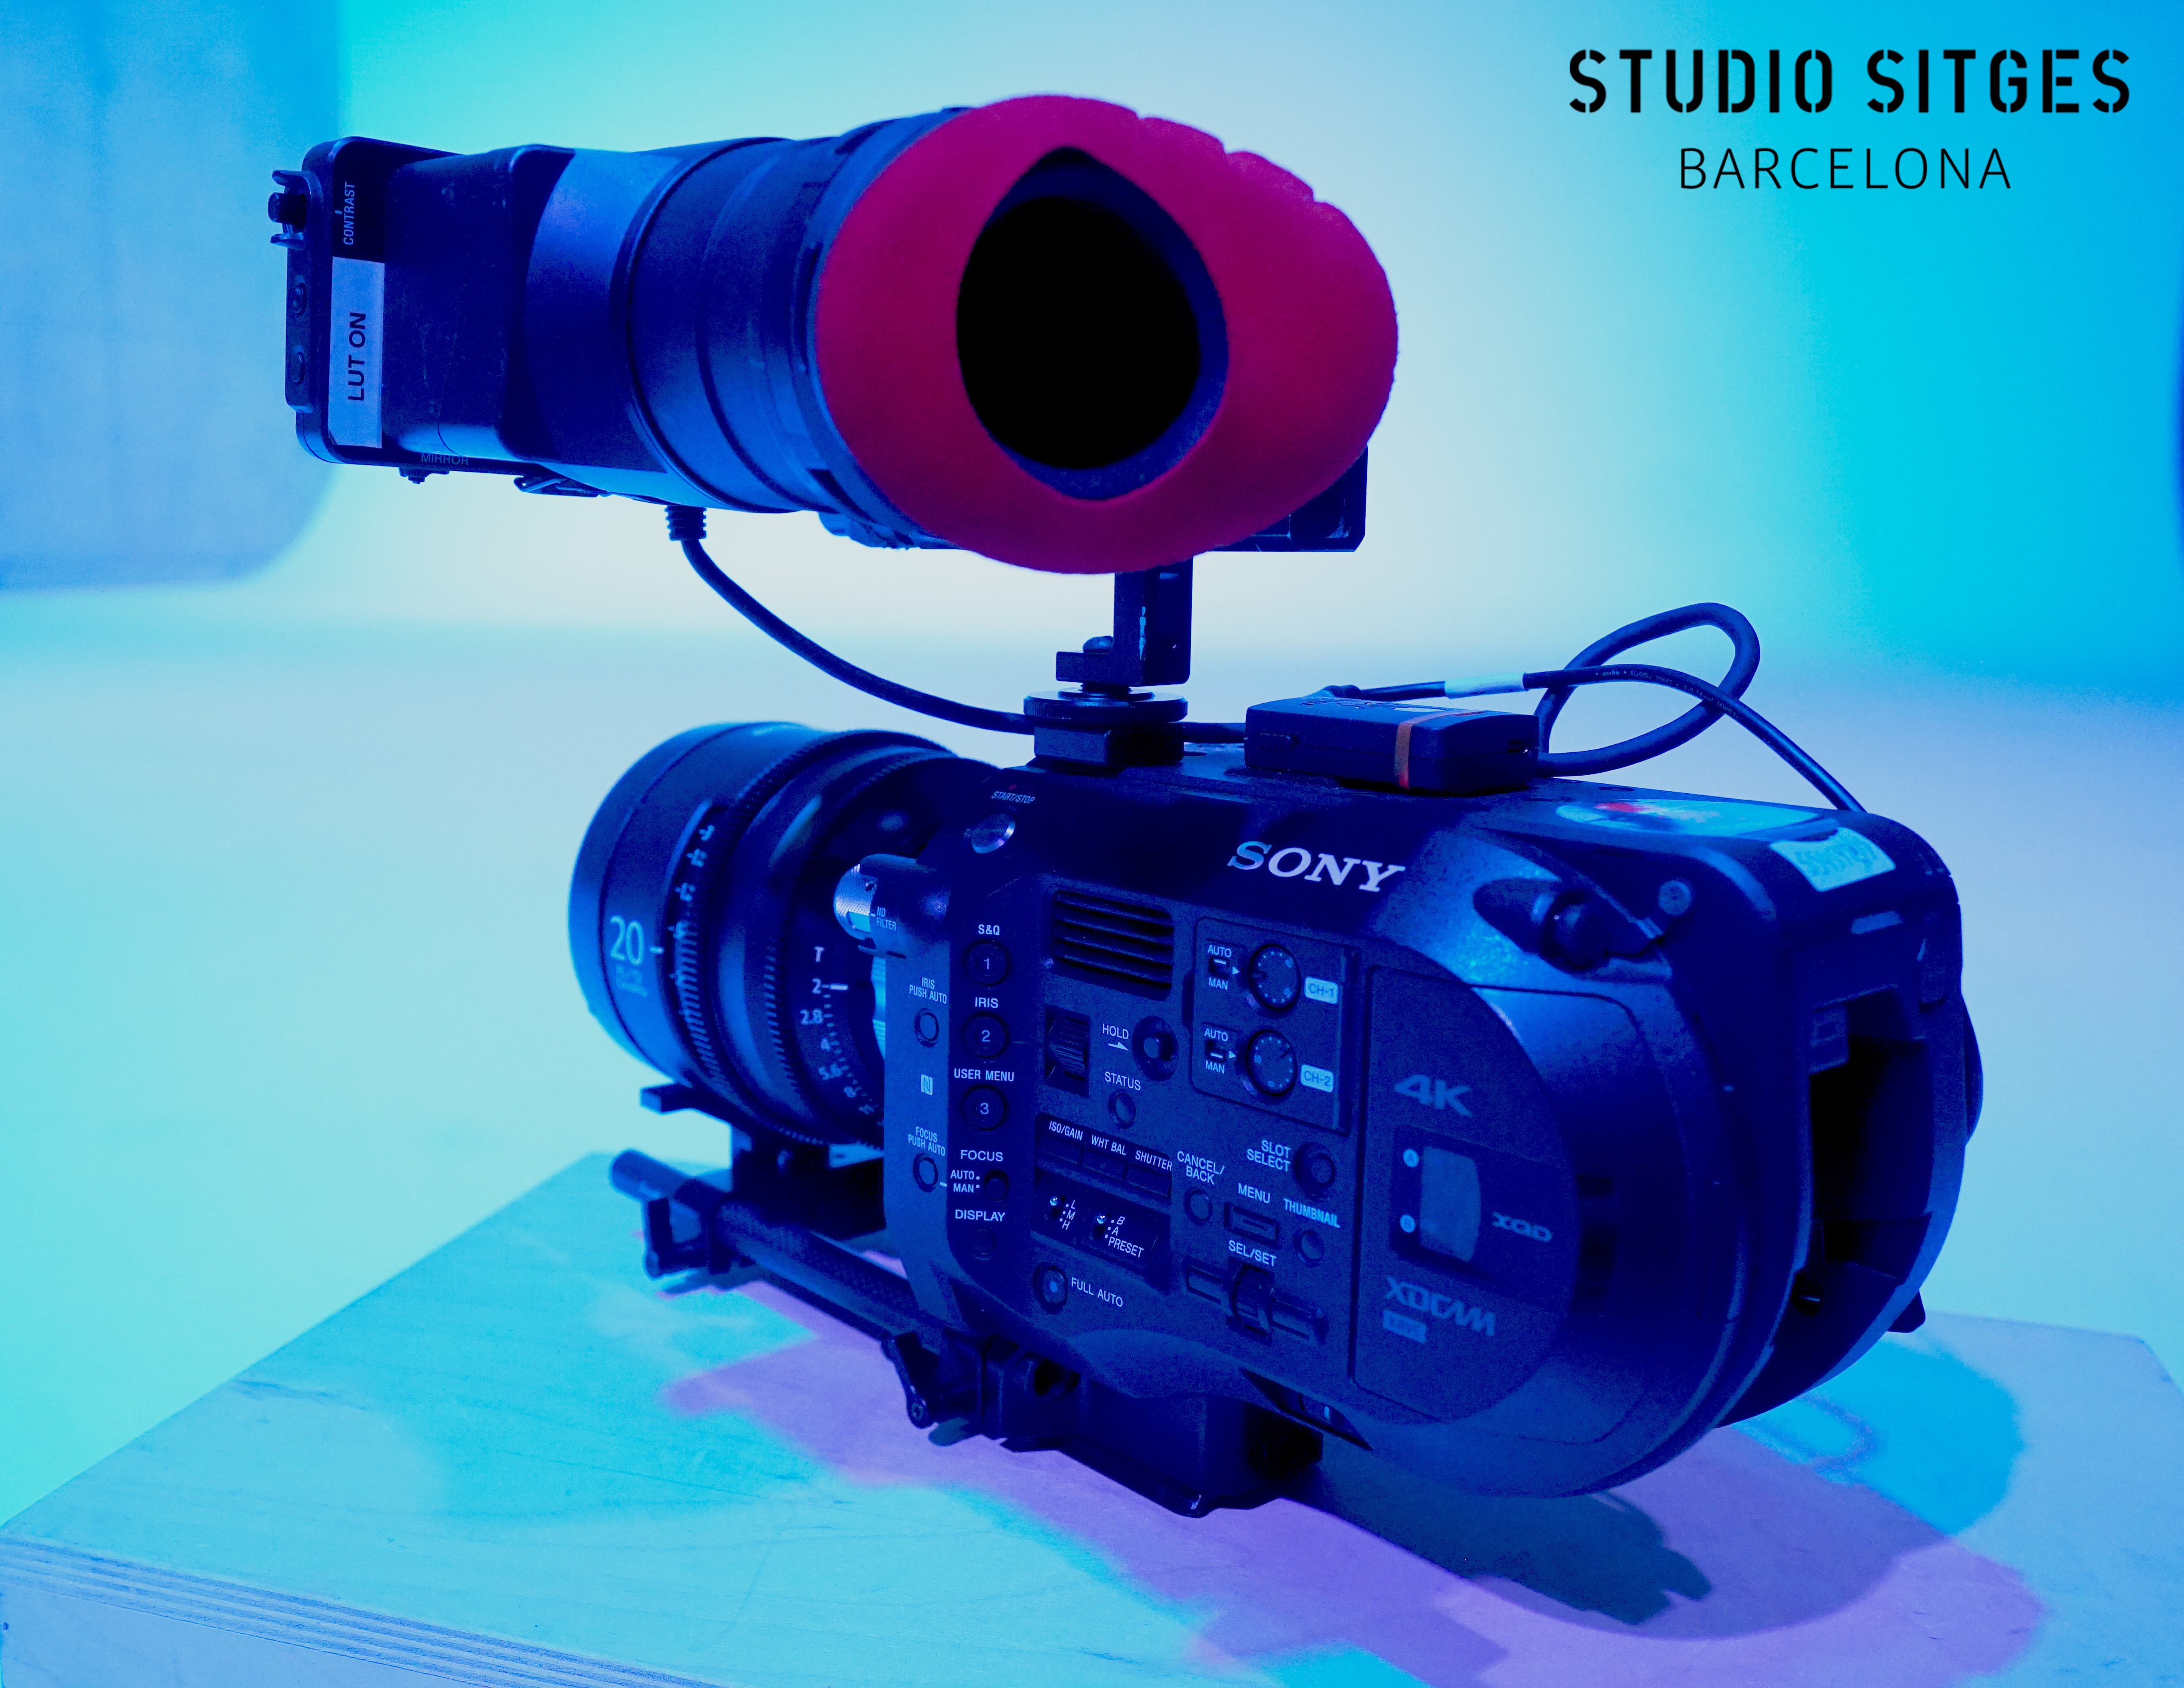 The Sony PXW-FS7 handheld Camera system